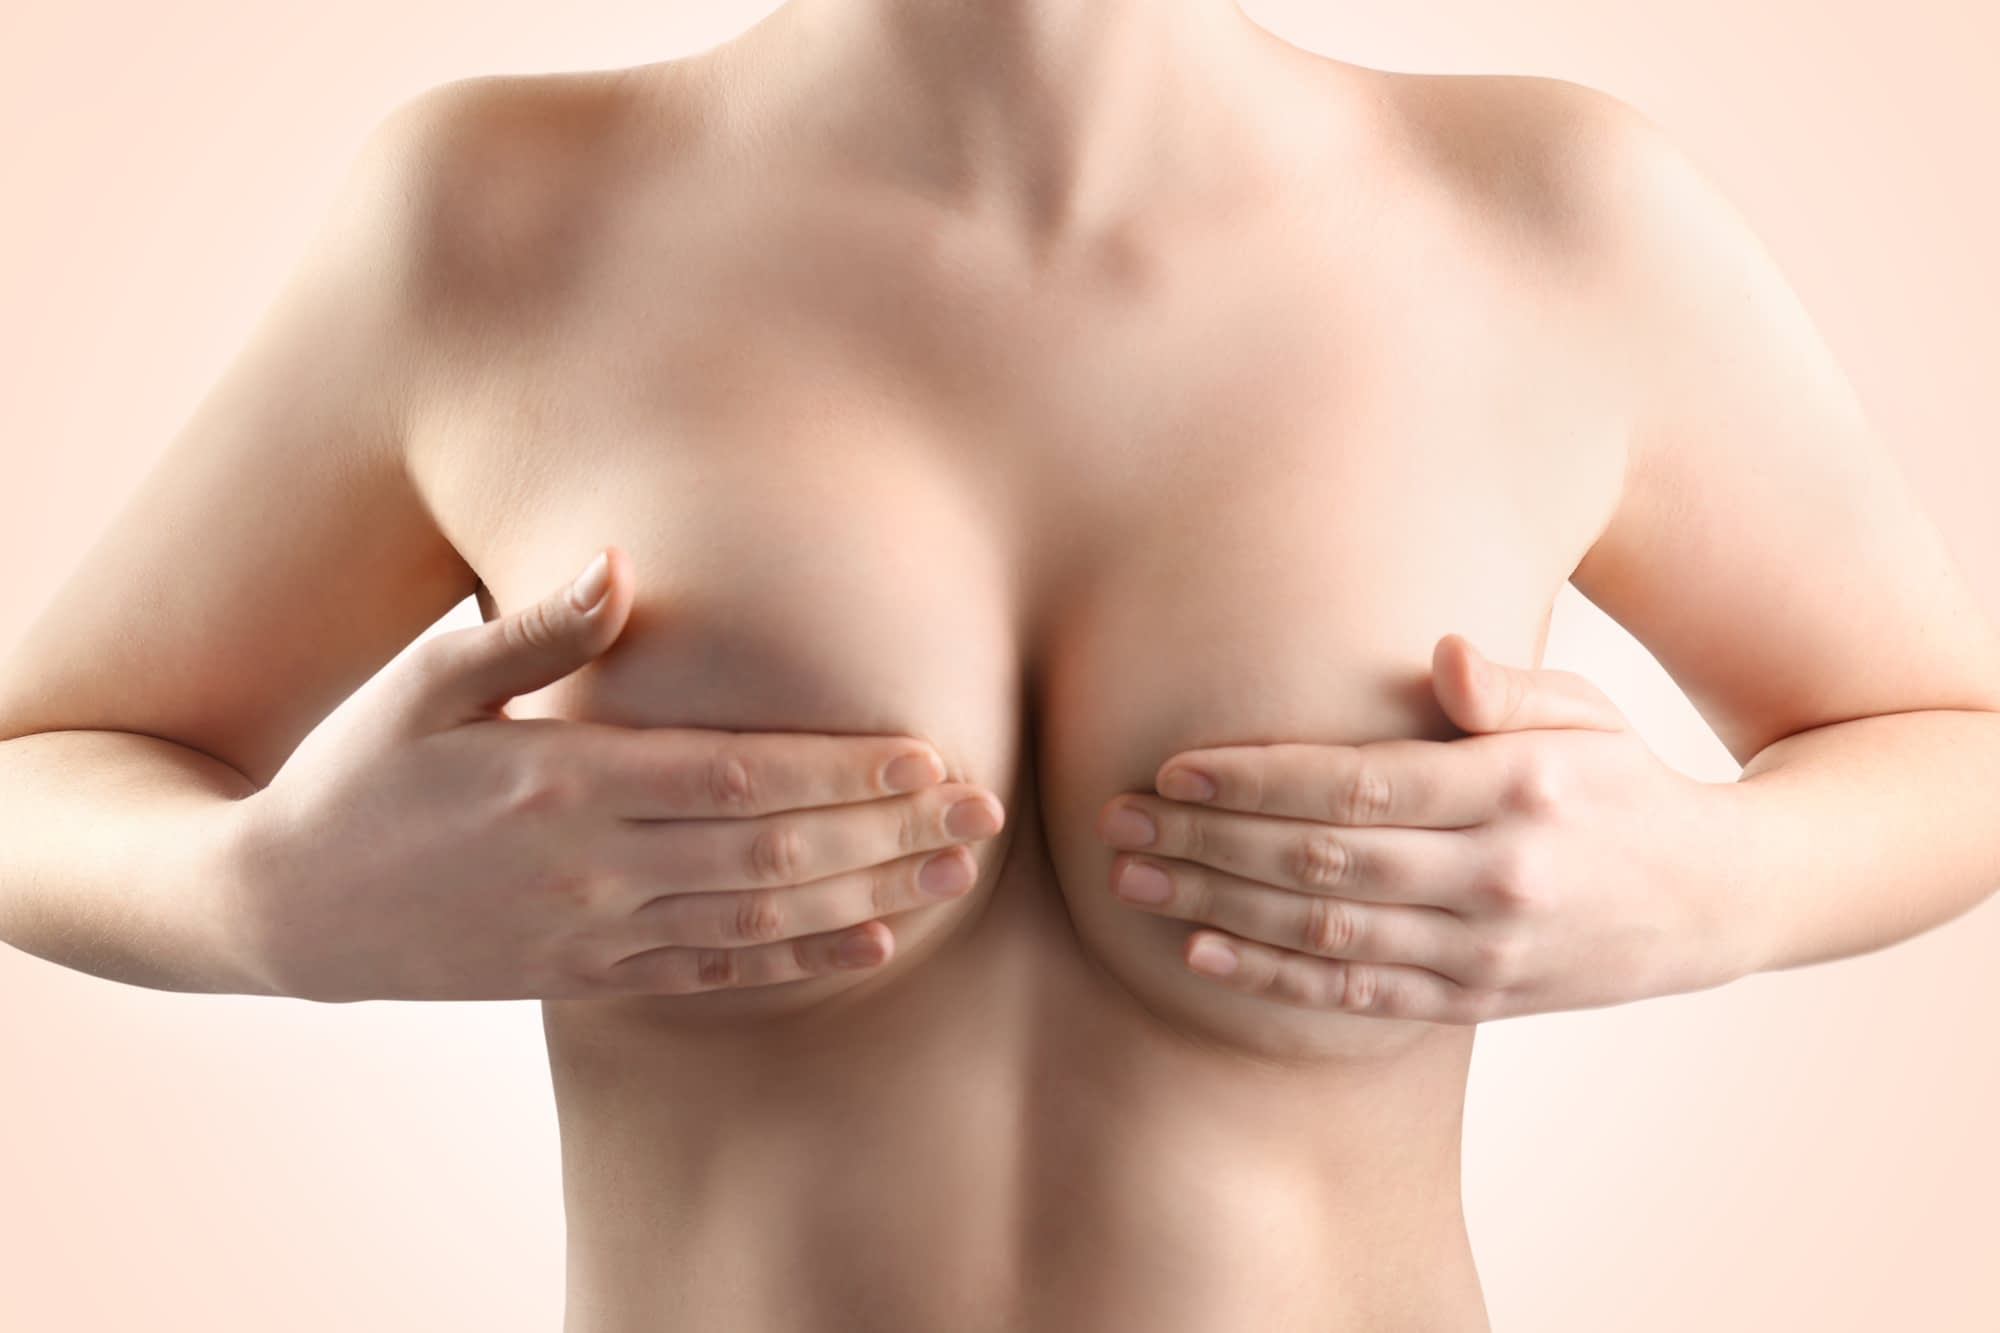 Hippocrates womens breasts